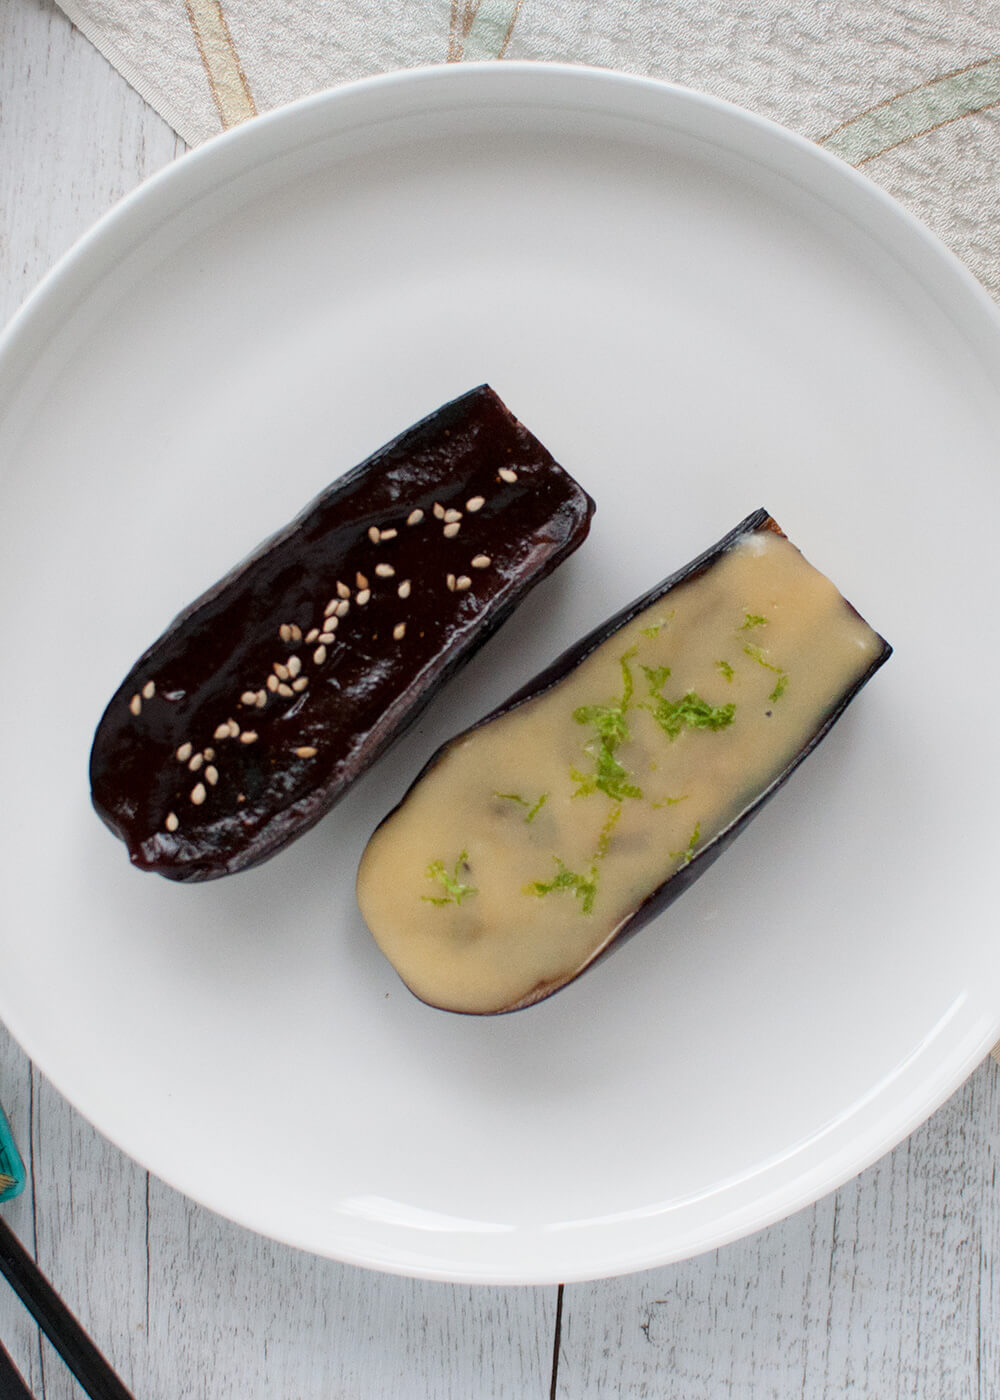 an-fried eggplant topped with sweet miso sauce, Miso Grazed Eggplant (Nasu Dengaku) is a very simple side dish or appetiser. Sweet miso goes so well with eggplant, which melts in your mouth.